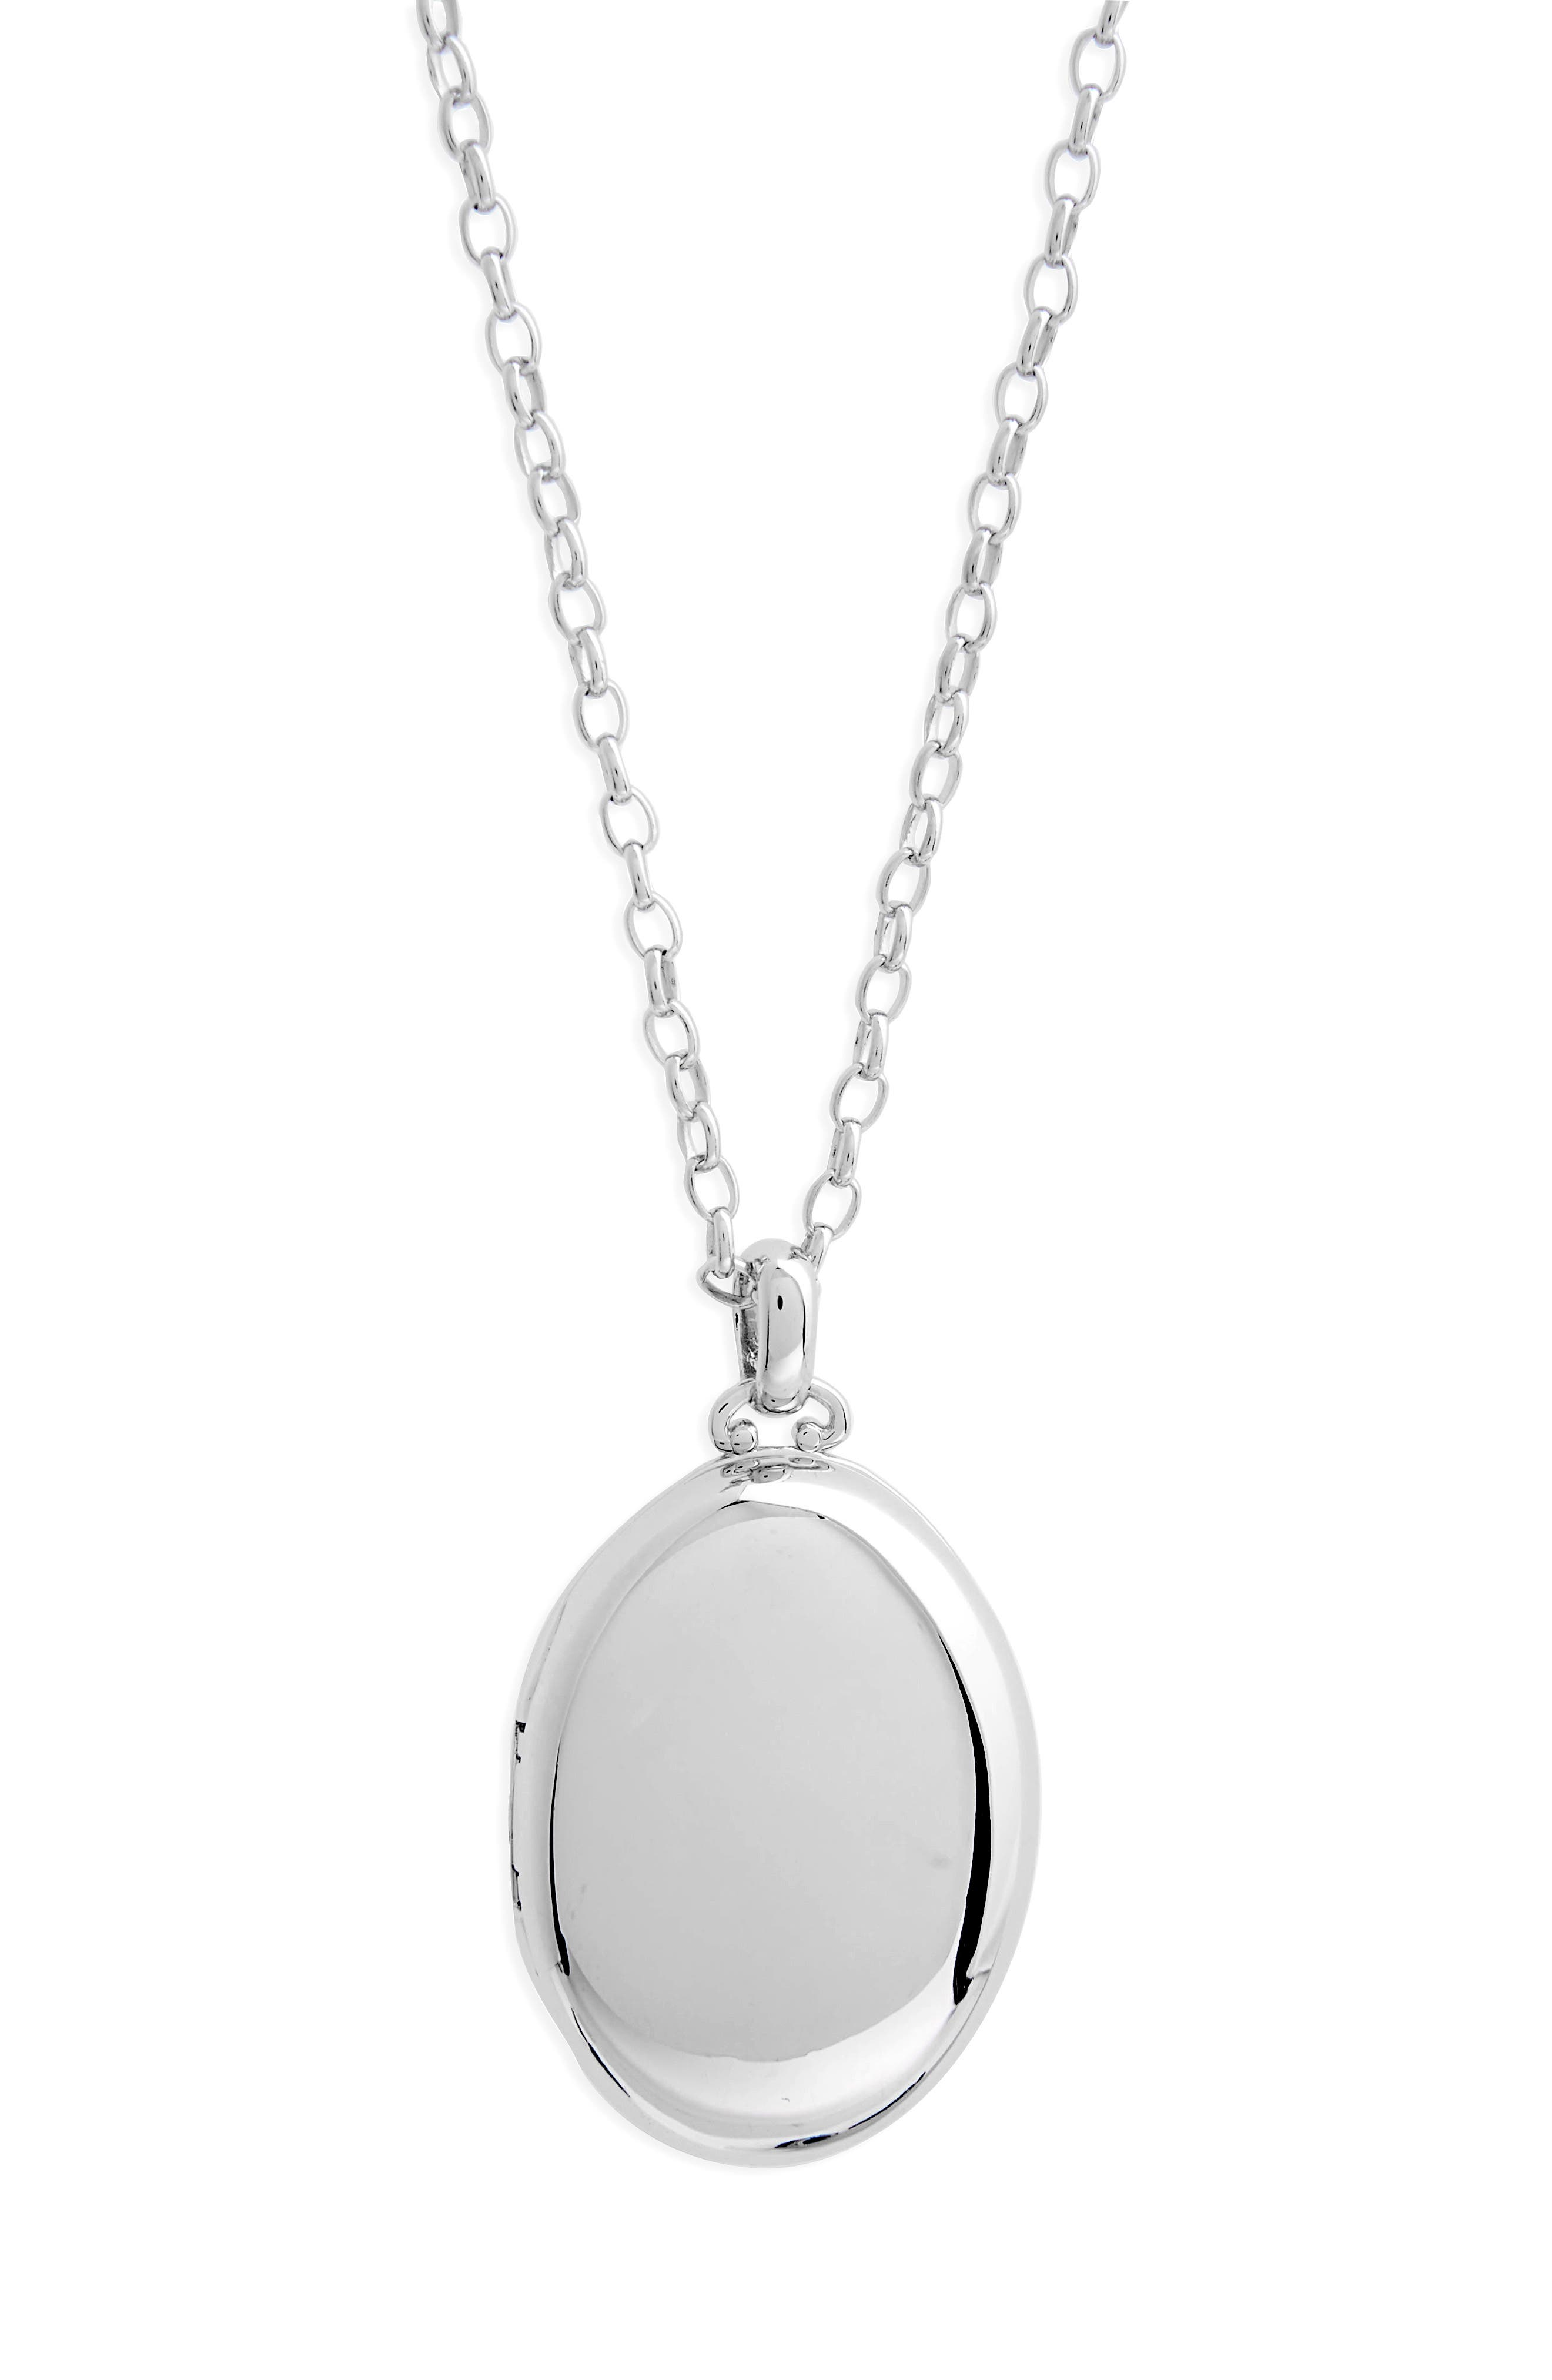 Four Image Oval Locket Necklace,                             Alternate thumbnail 2, color,                             STERLING SILVER